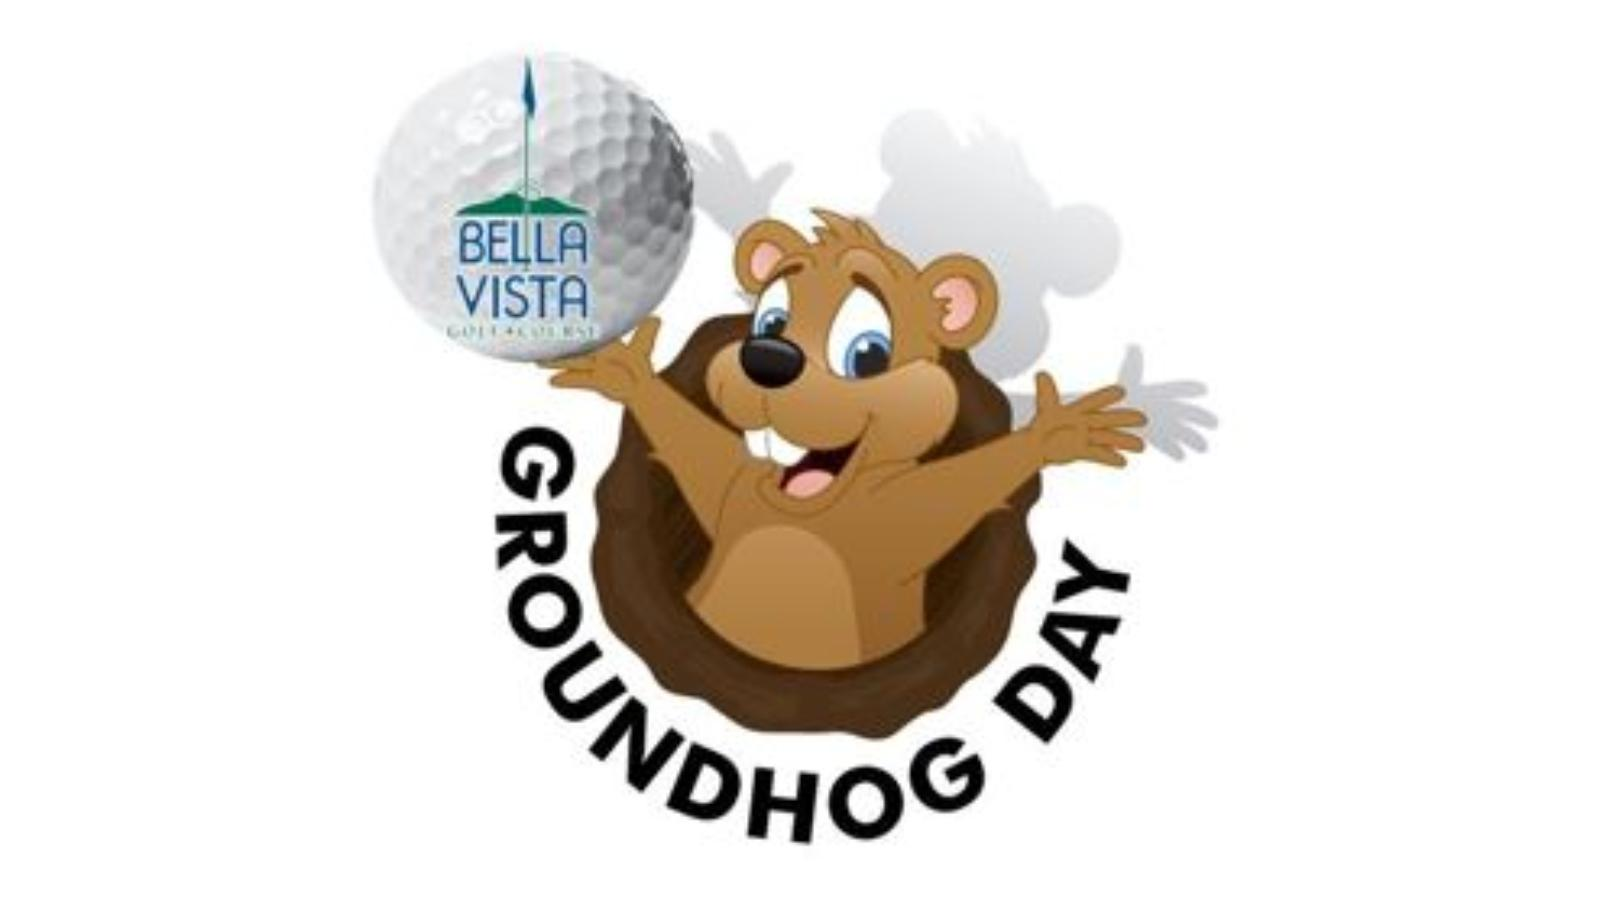 bv groundhog day 2021